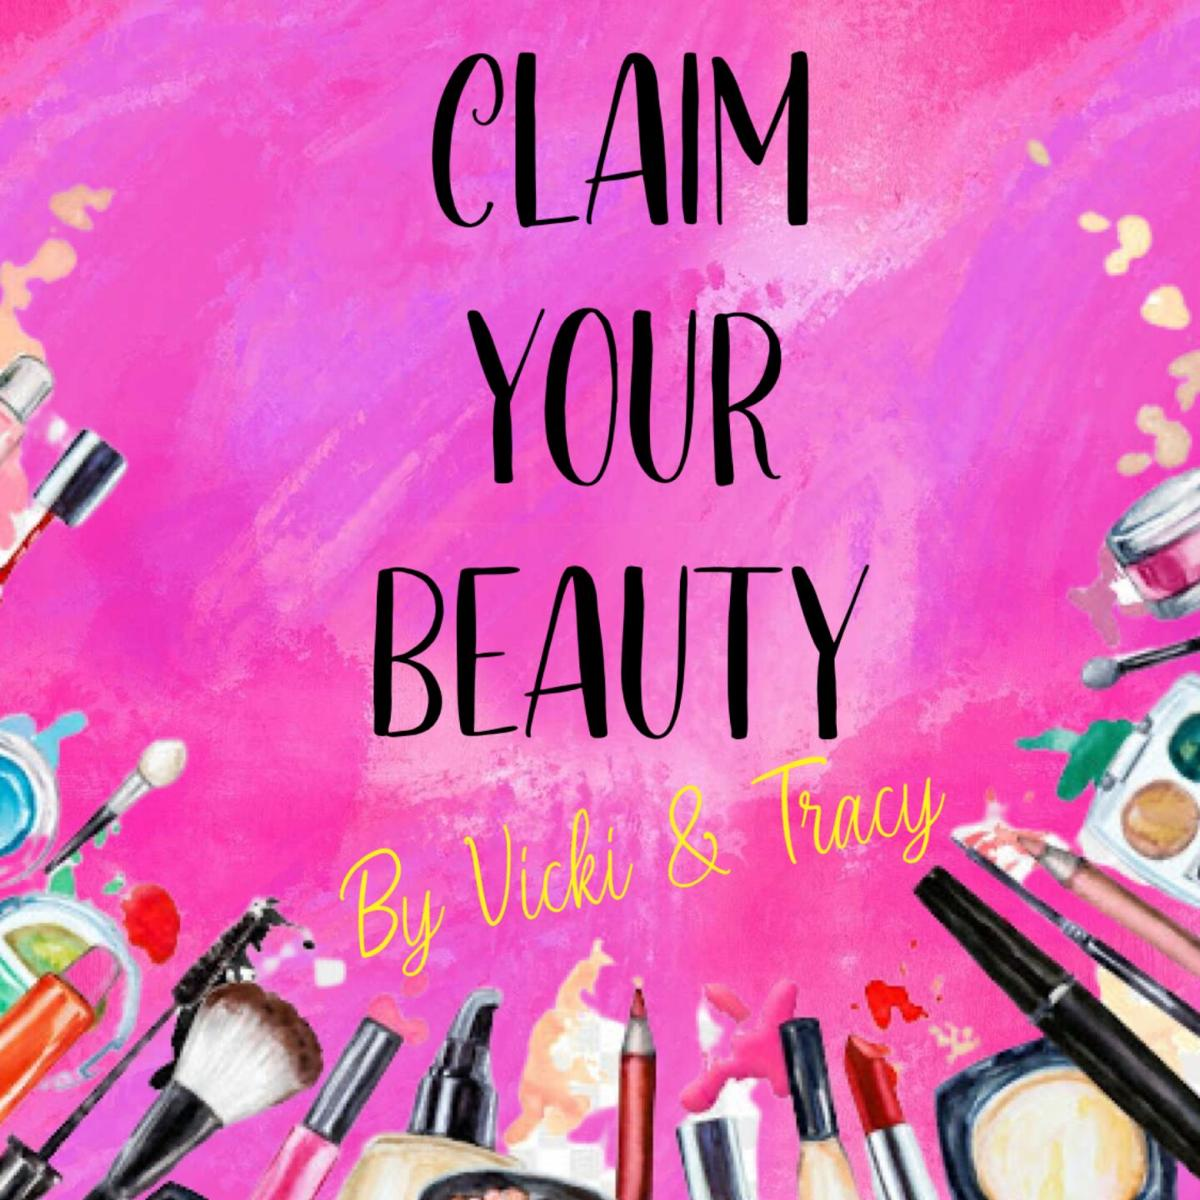 claim your beauty final logo.PNG